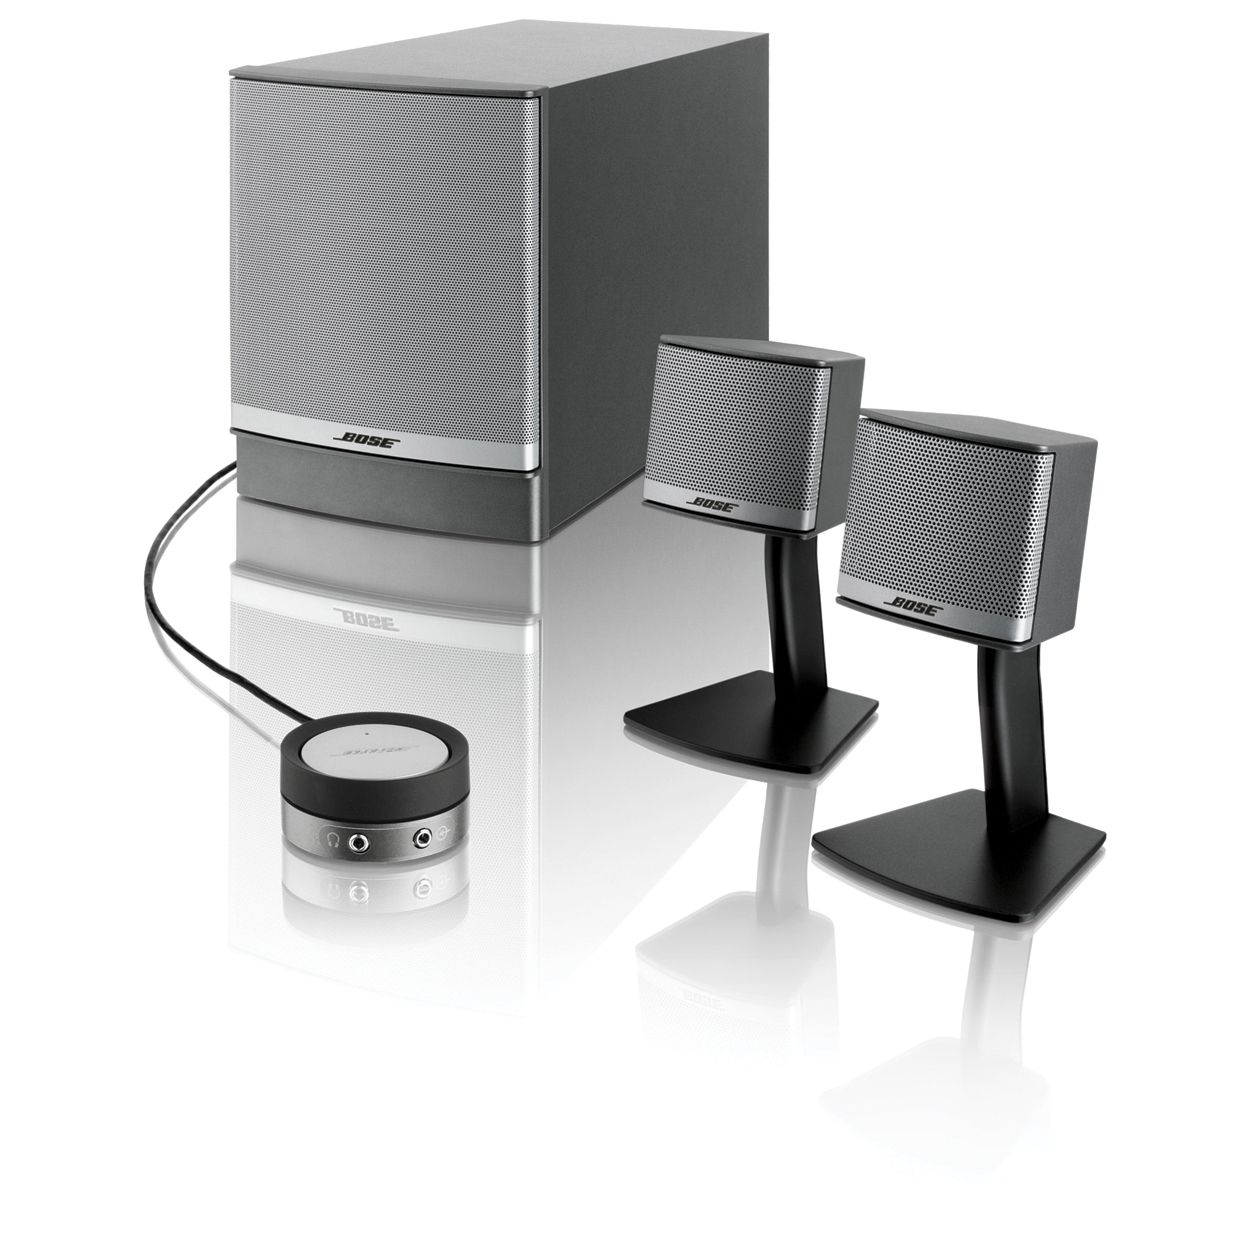 Bose Sound System >> Bose Speaker System Awesome Sound Sound Systems And Accessories